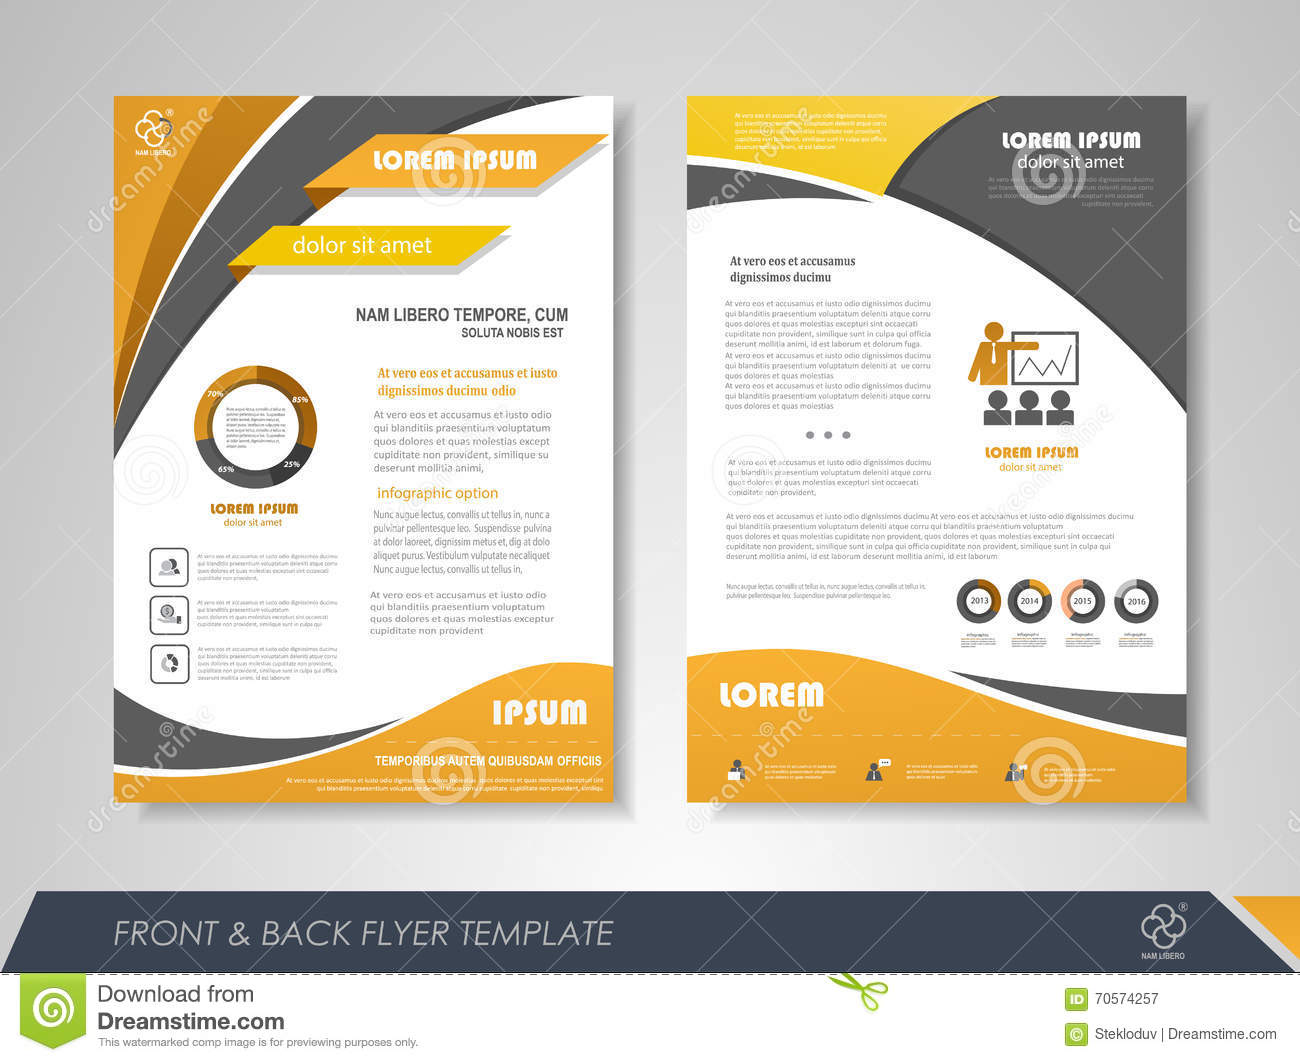 business-flyer-template-front-back-page-brochure-design-icons-infographic-elements-70574257.jpg